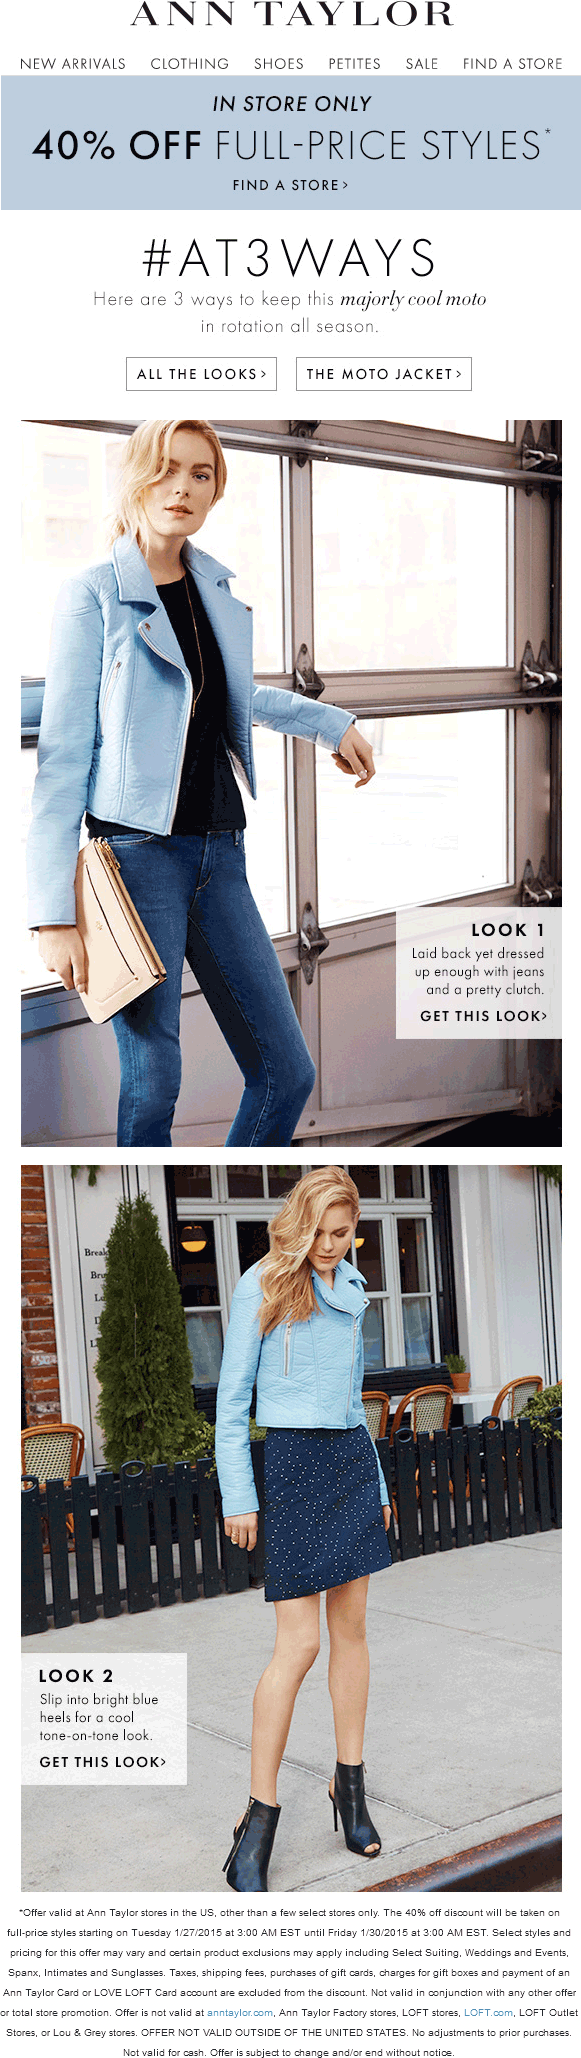 Ann Taylor Coupon September 2017 40% off at Ann Taylor